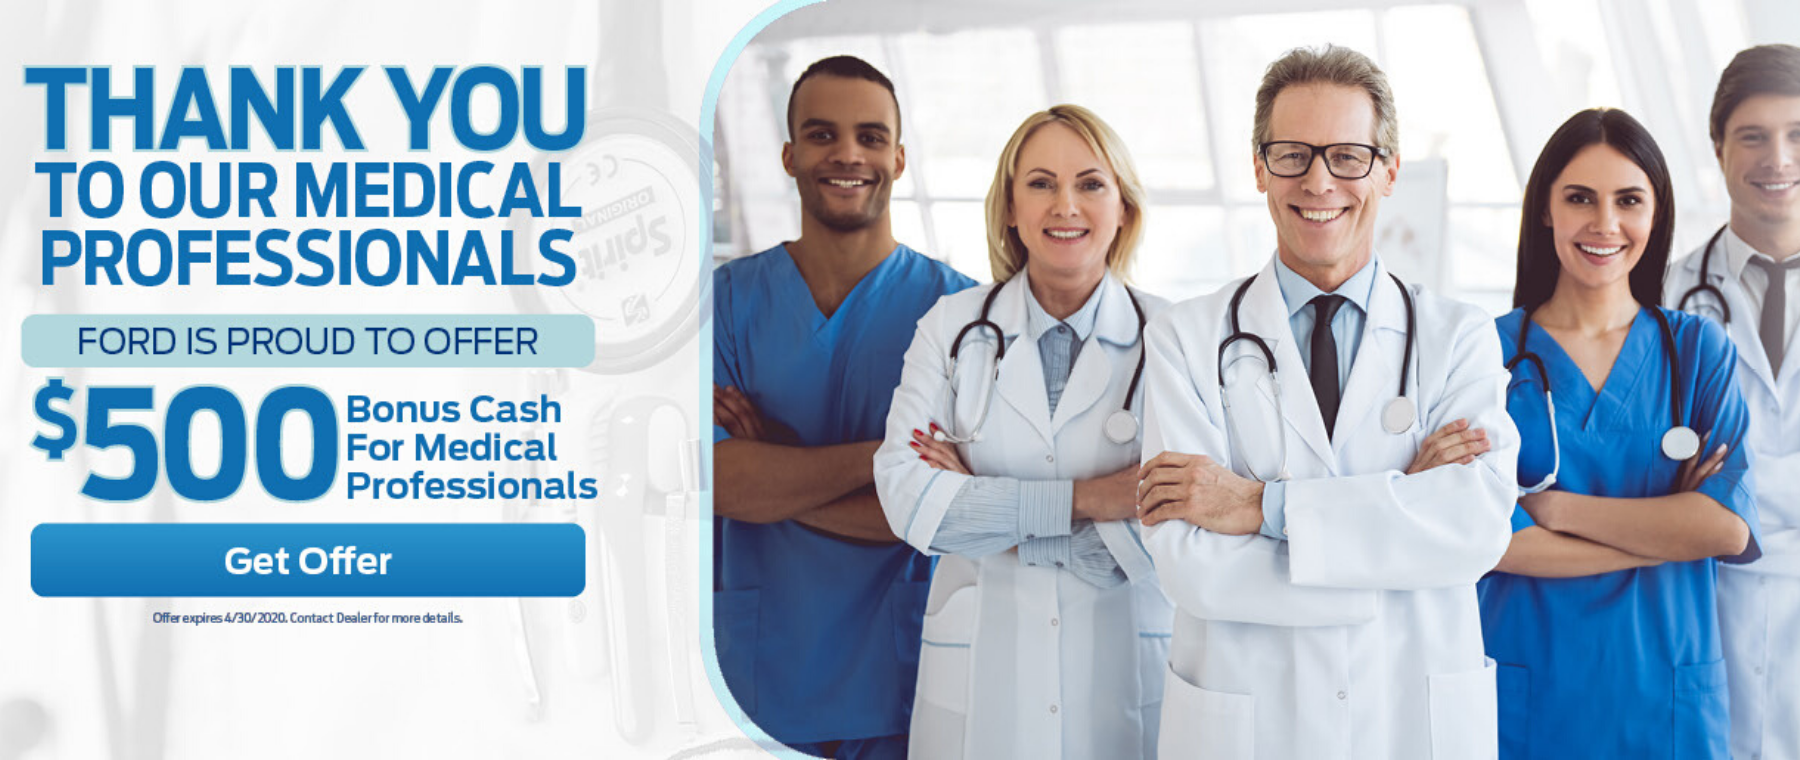 Medical_Professional_Discount_Bayer_Auto_Group